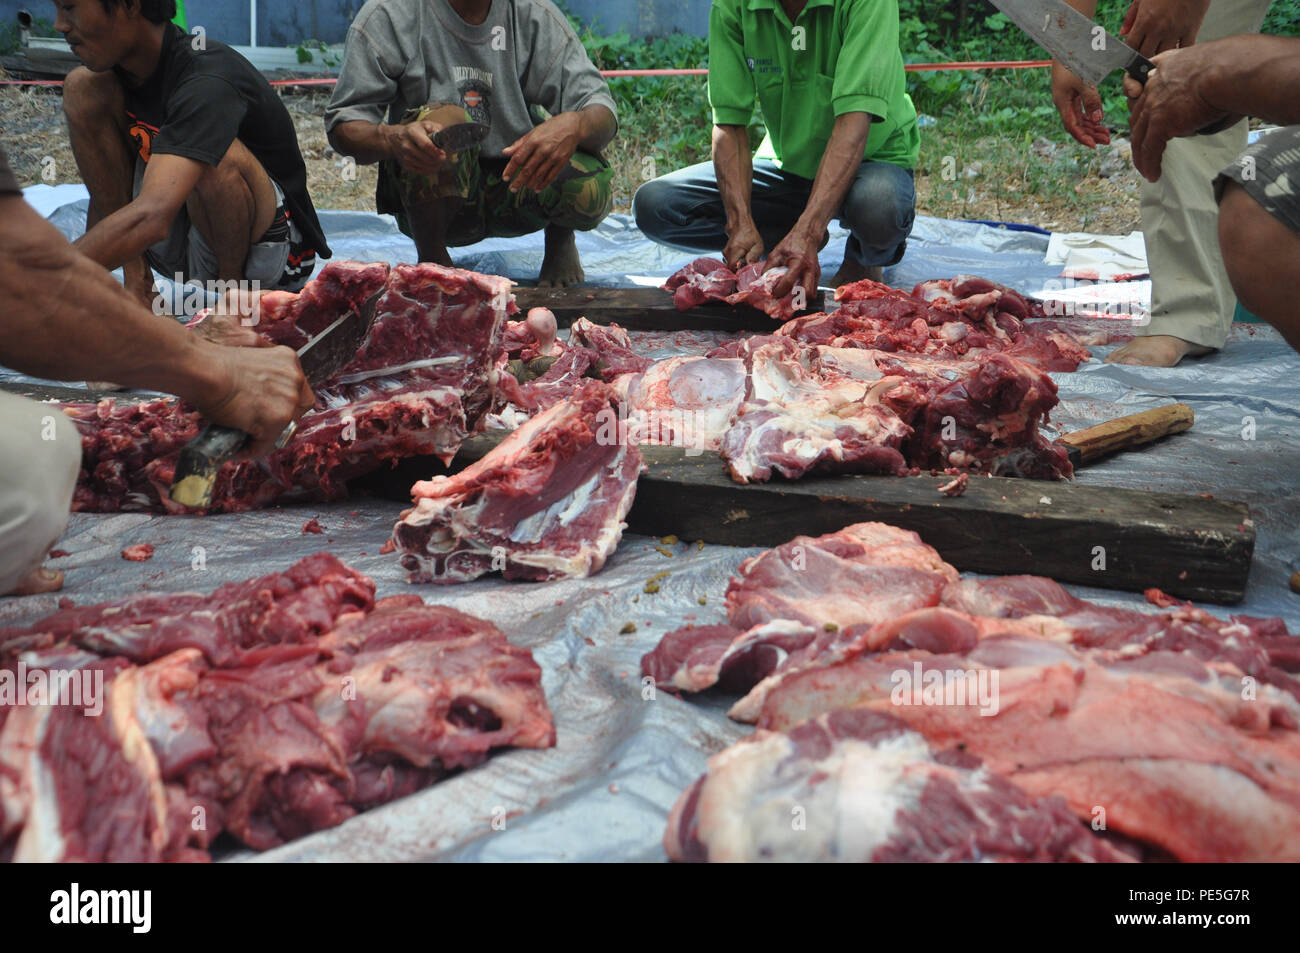 Indonesian moslems cuts the meat of sacrificial cows in Eid al-Adha on September 24, 2015. - Stock Image